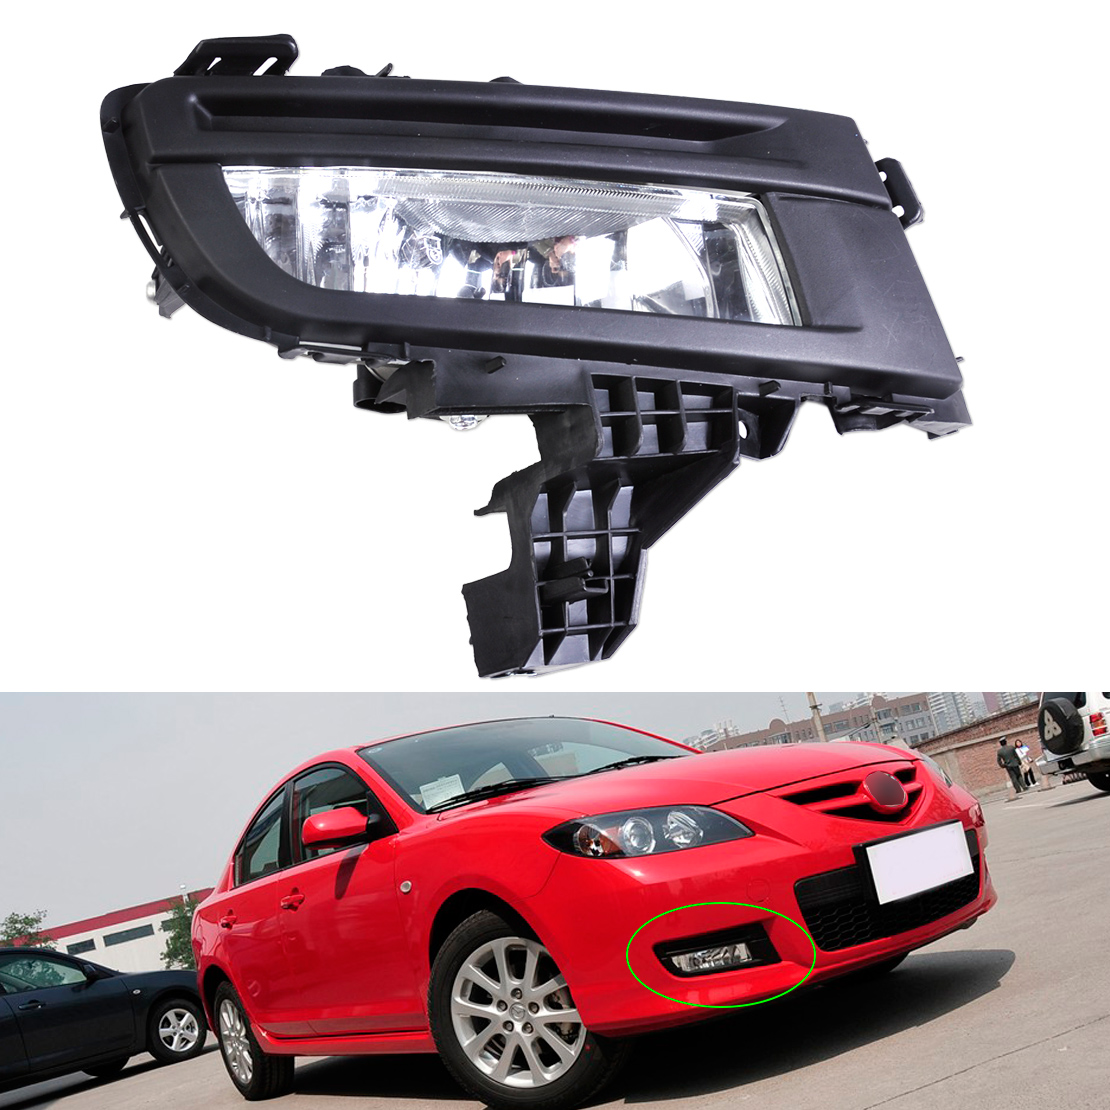 beler 1Pc high quality ABS plastic New Front Right Fog Light Lamp 9006 12V 51W for Mazda 3 2007 2008 2009 Replacement MA2592113 for vw golf 5 2004 2005 2006 2007 2008 2009 right side high quality 9 led front fog lamp fog light